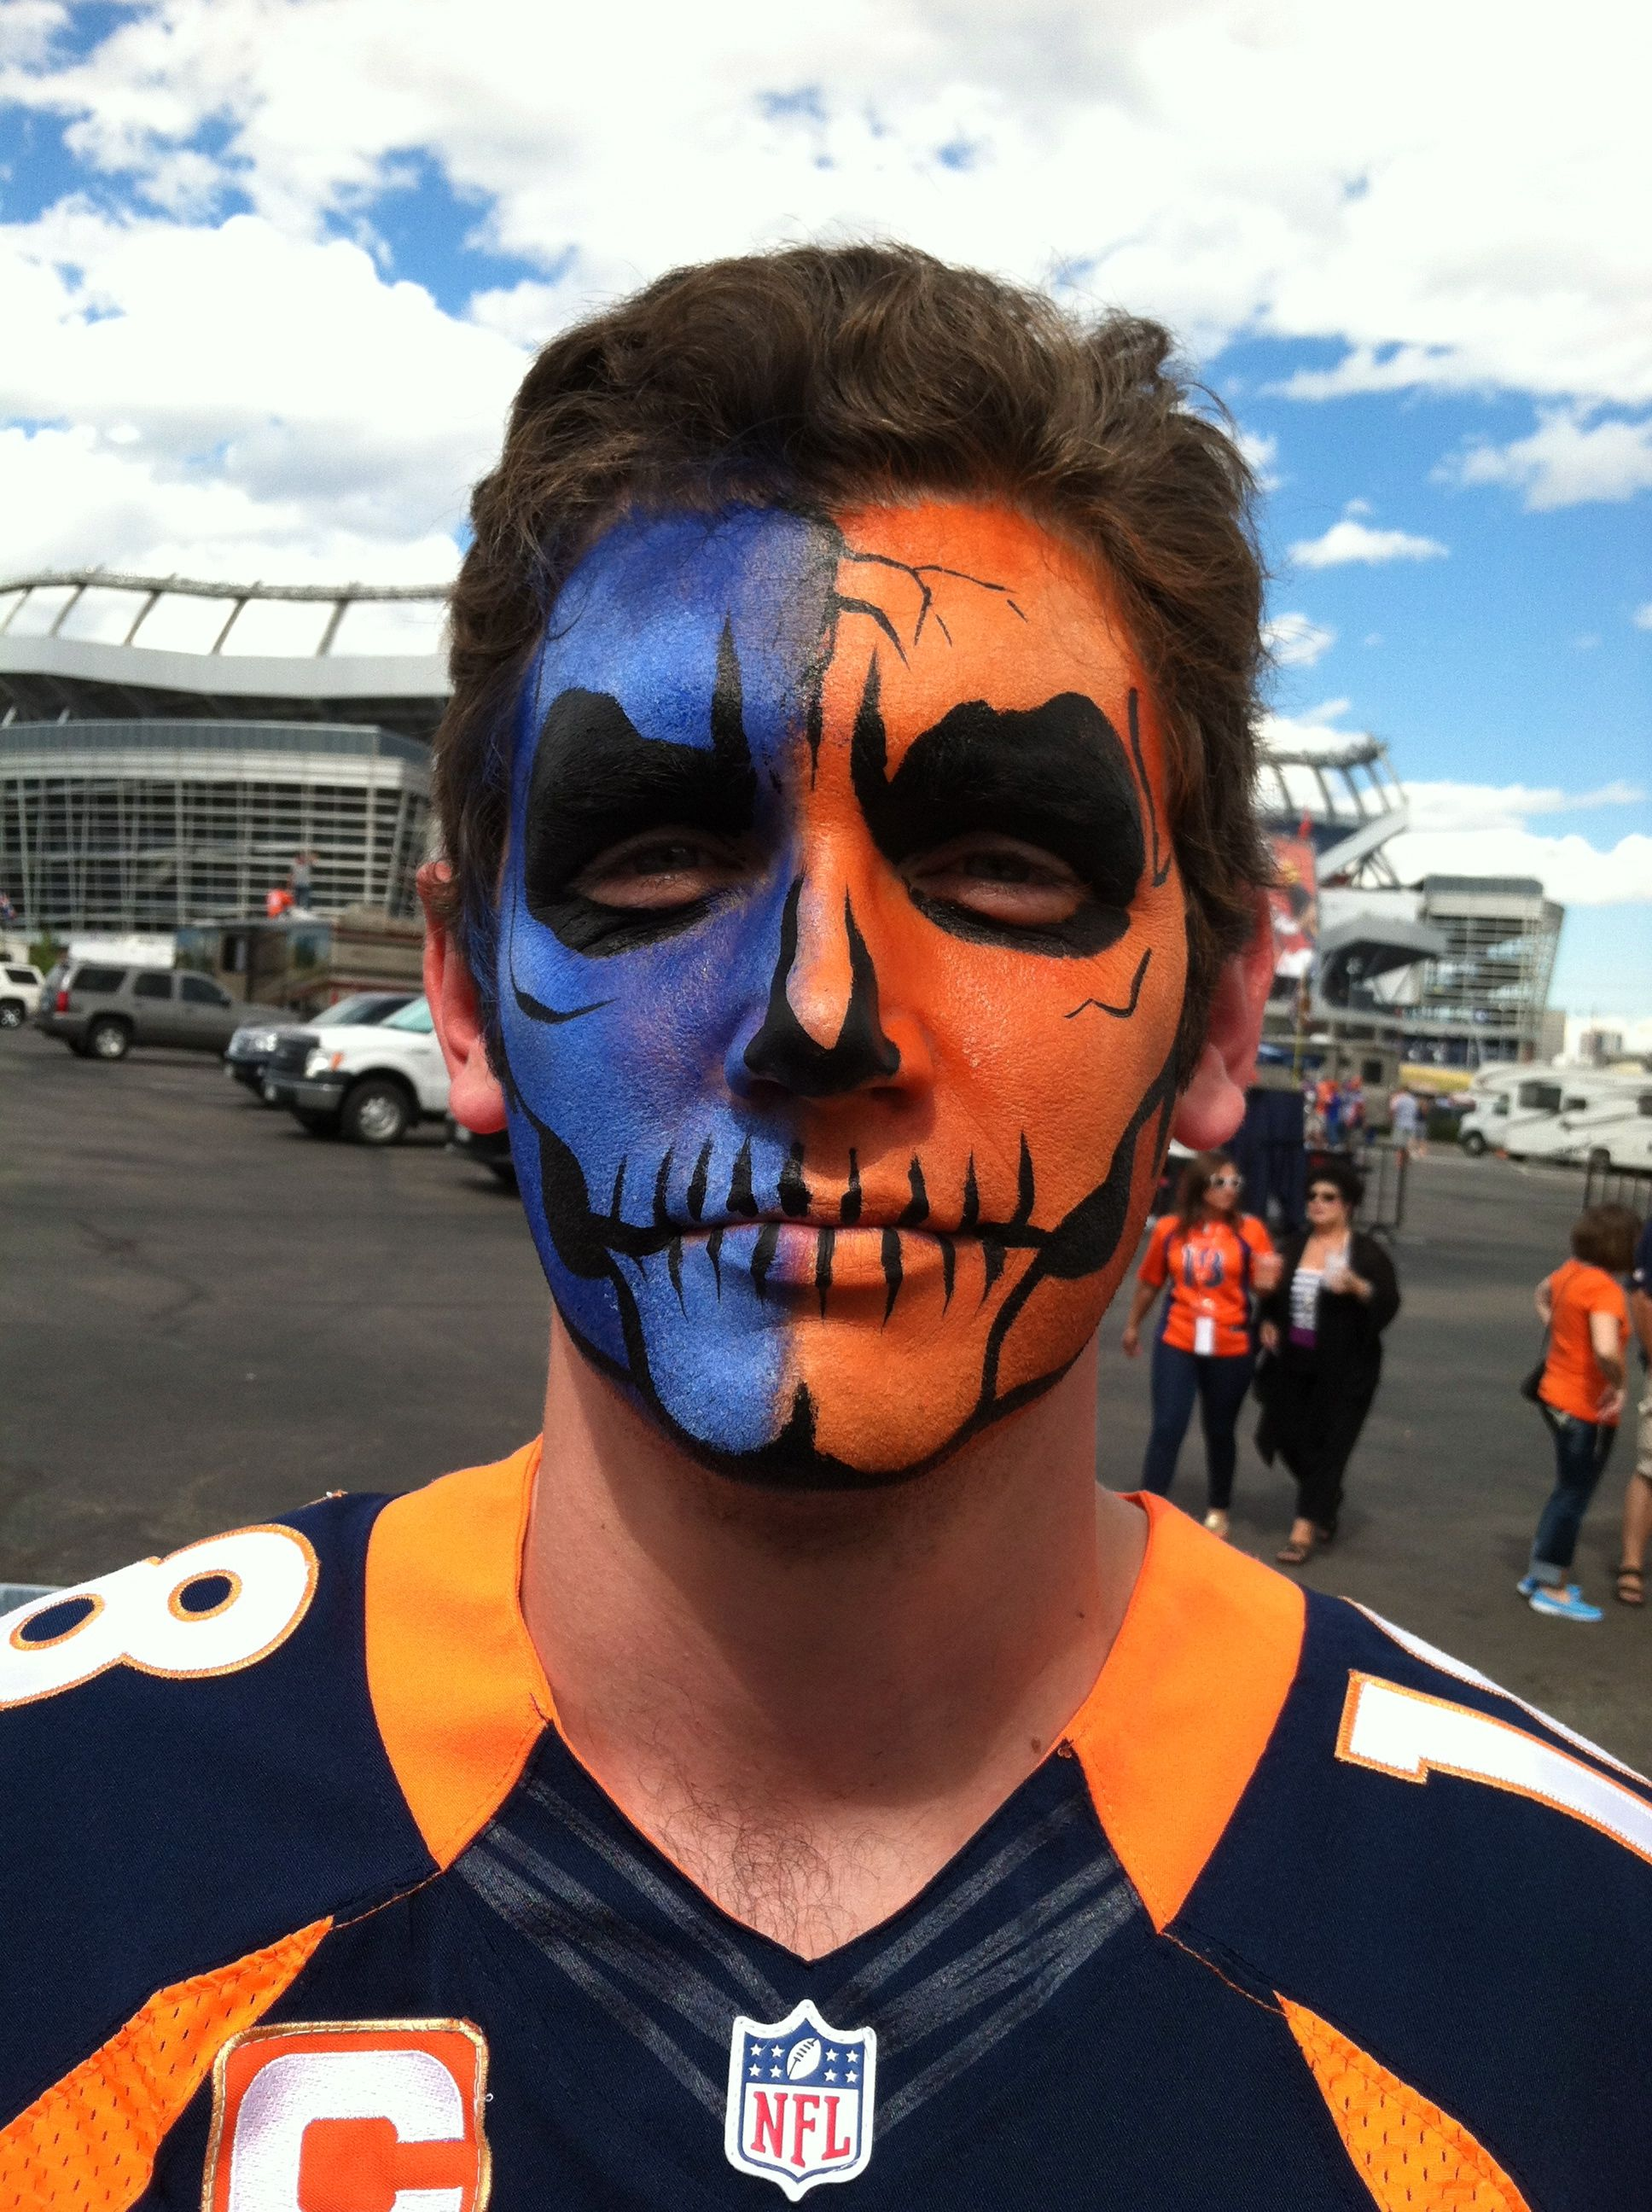 Denver Broncos Skull Face Painting For The Big Game Skull Face Paint Football Face Paint Fan Face Paint